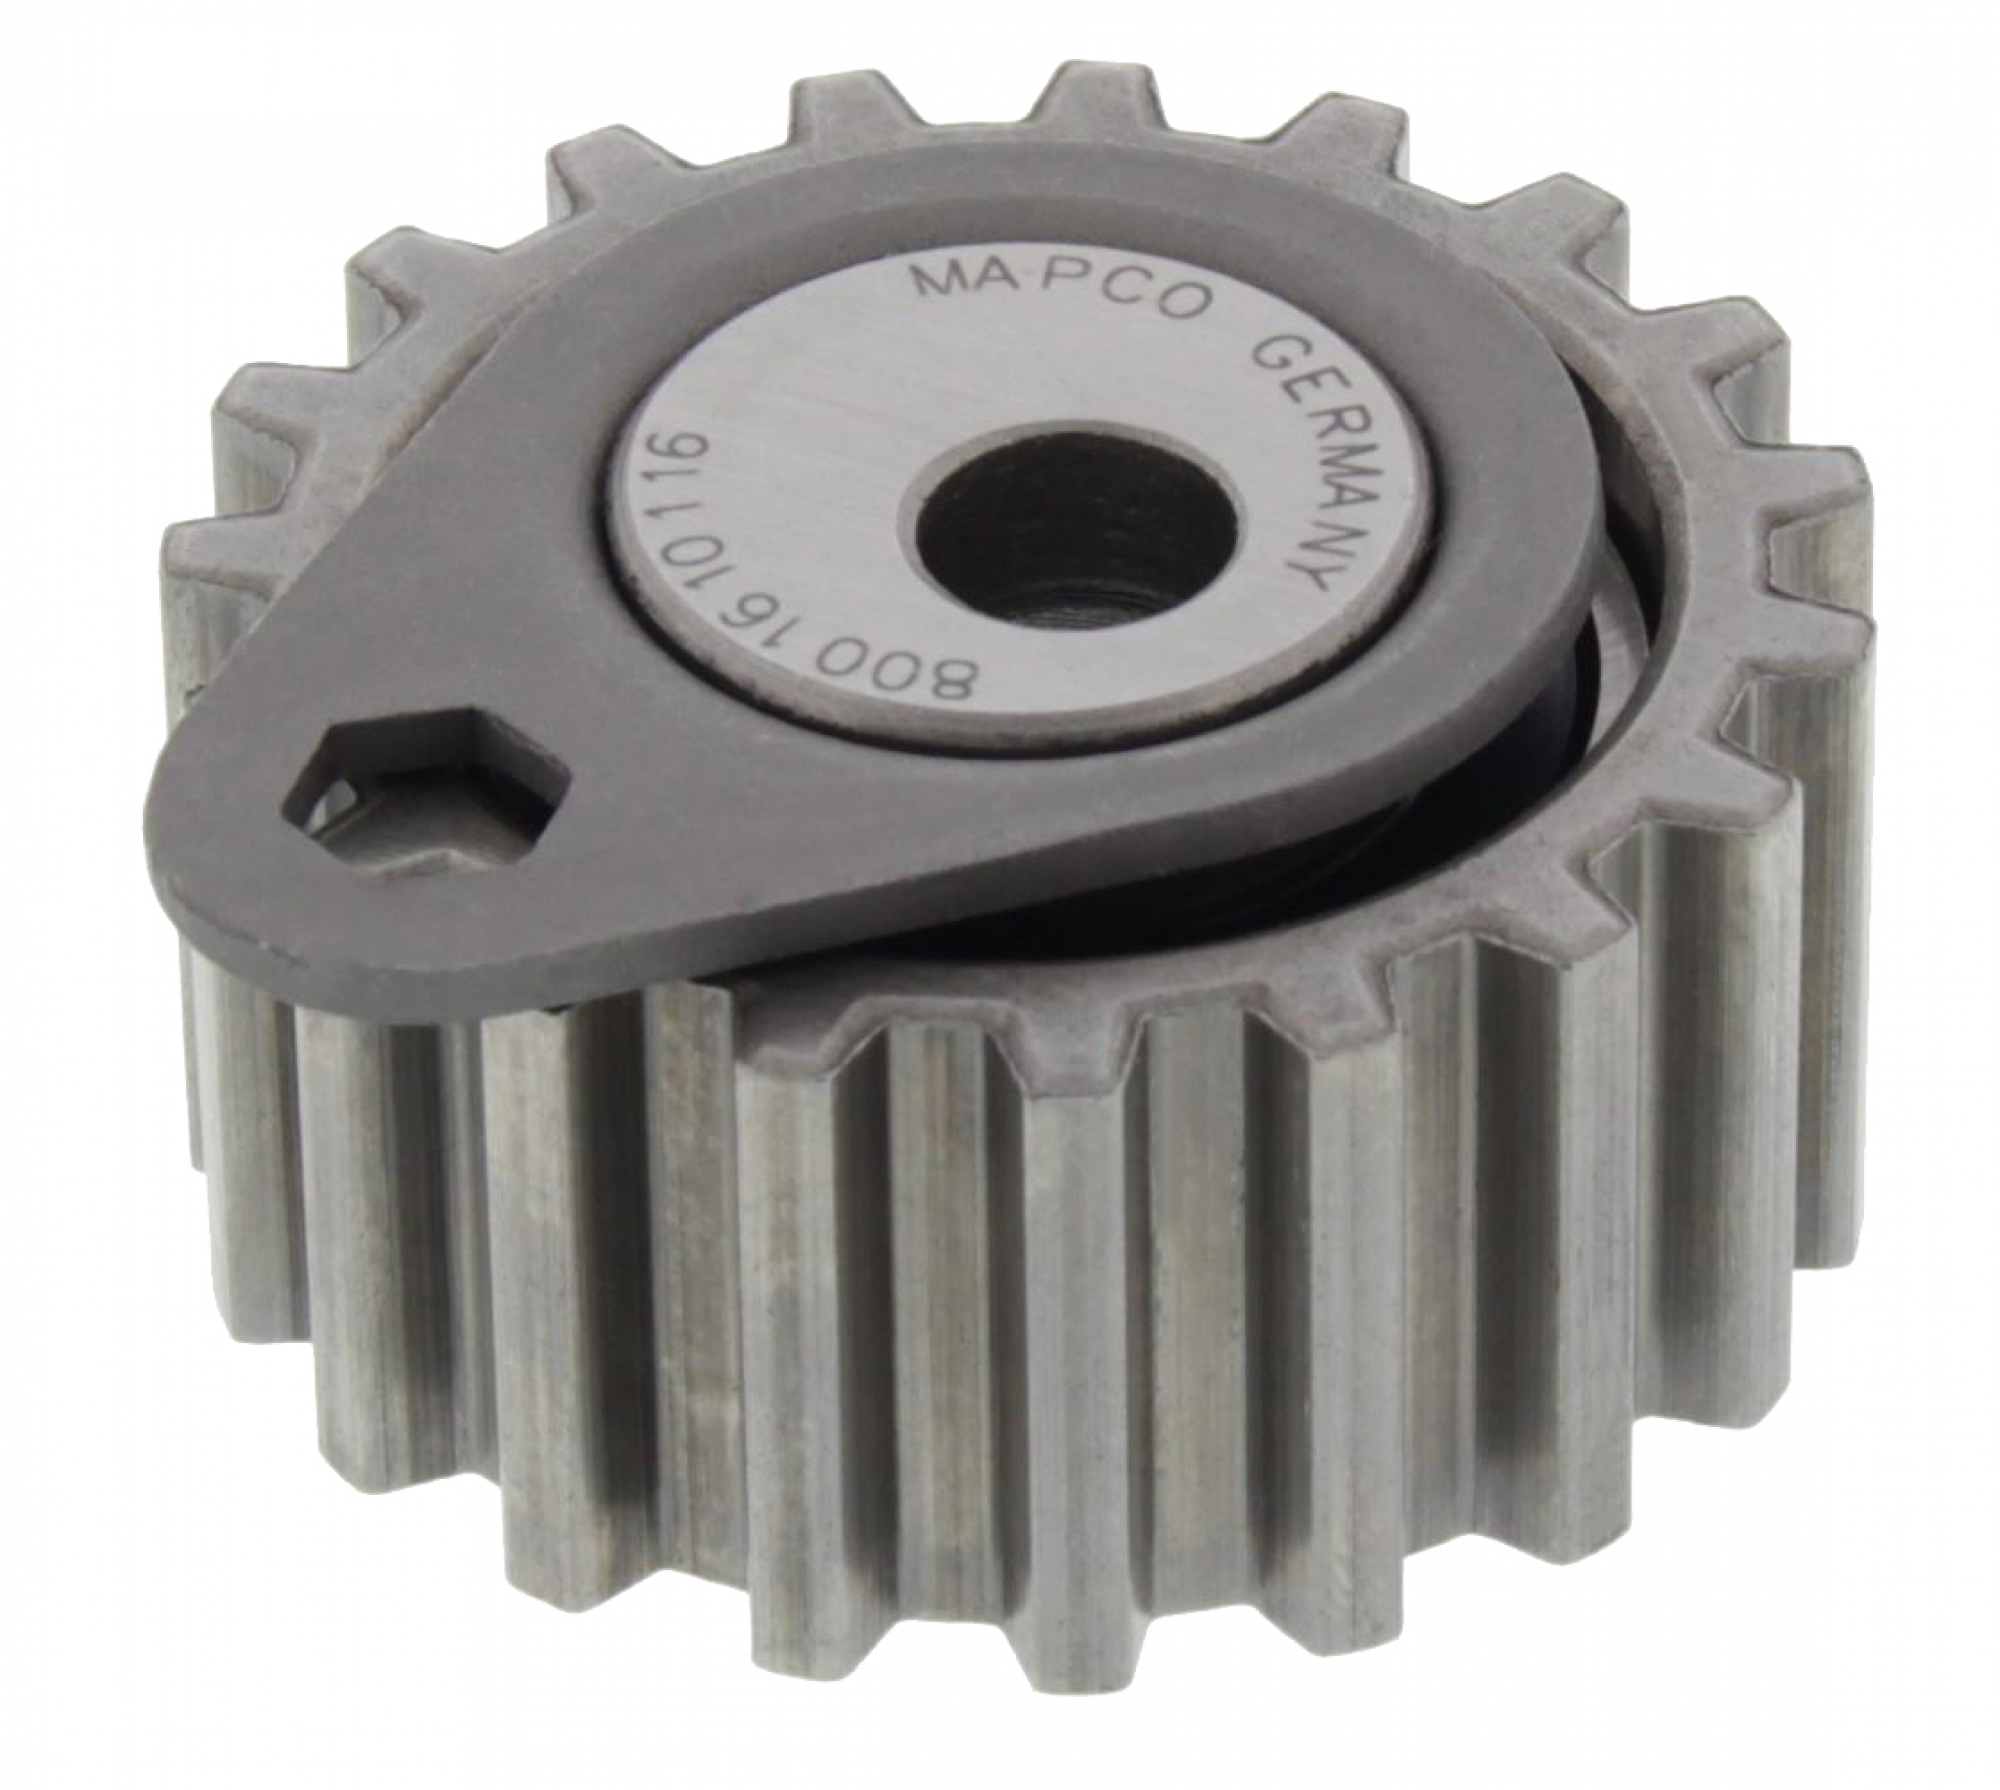 Mapco 23757 Tensioner Pulley Timing Belt Pulleys